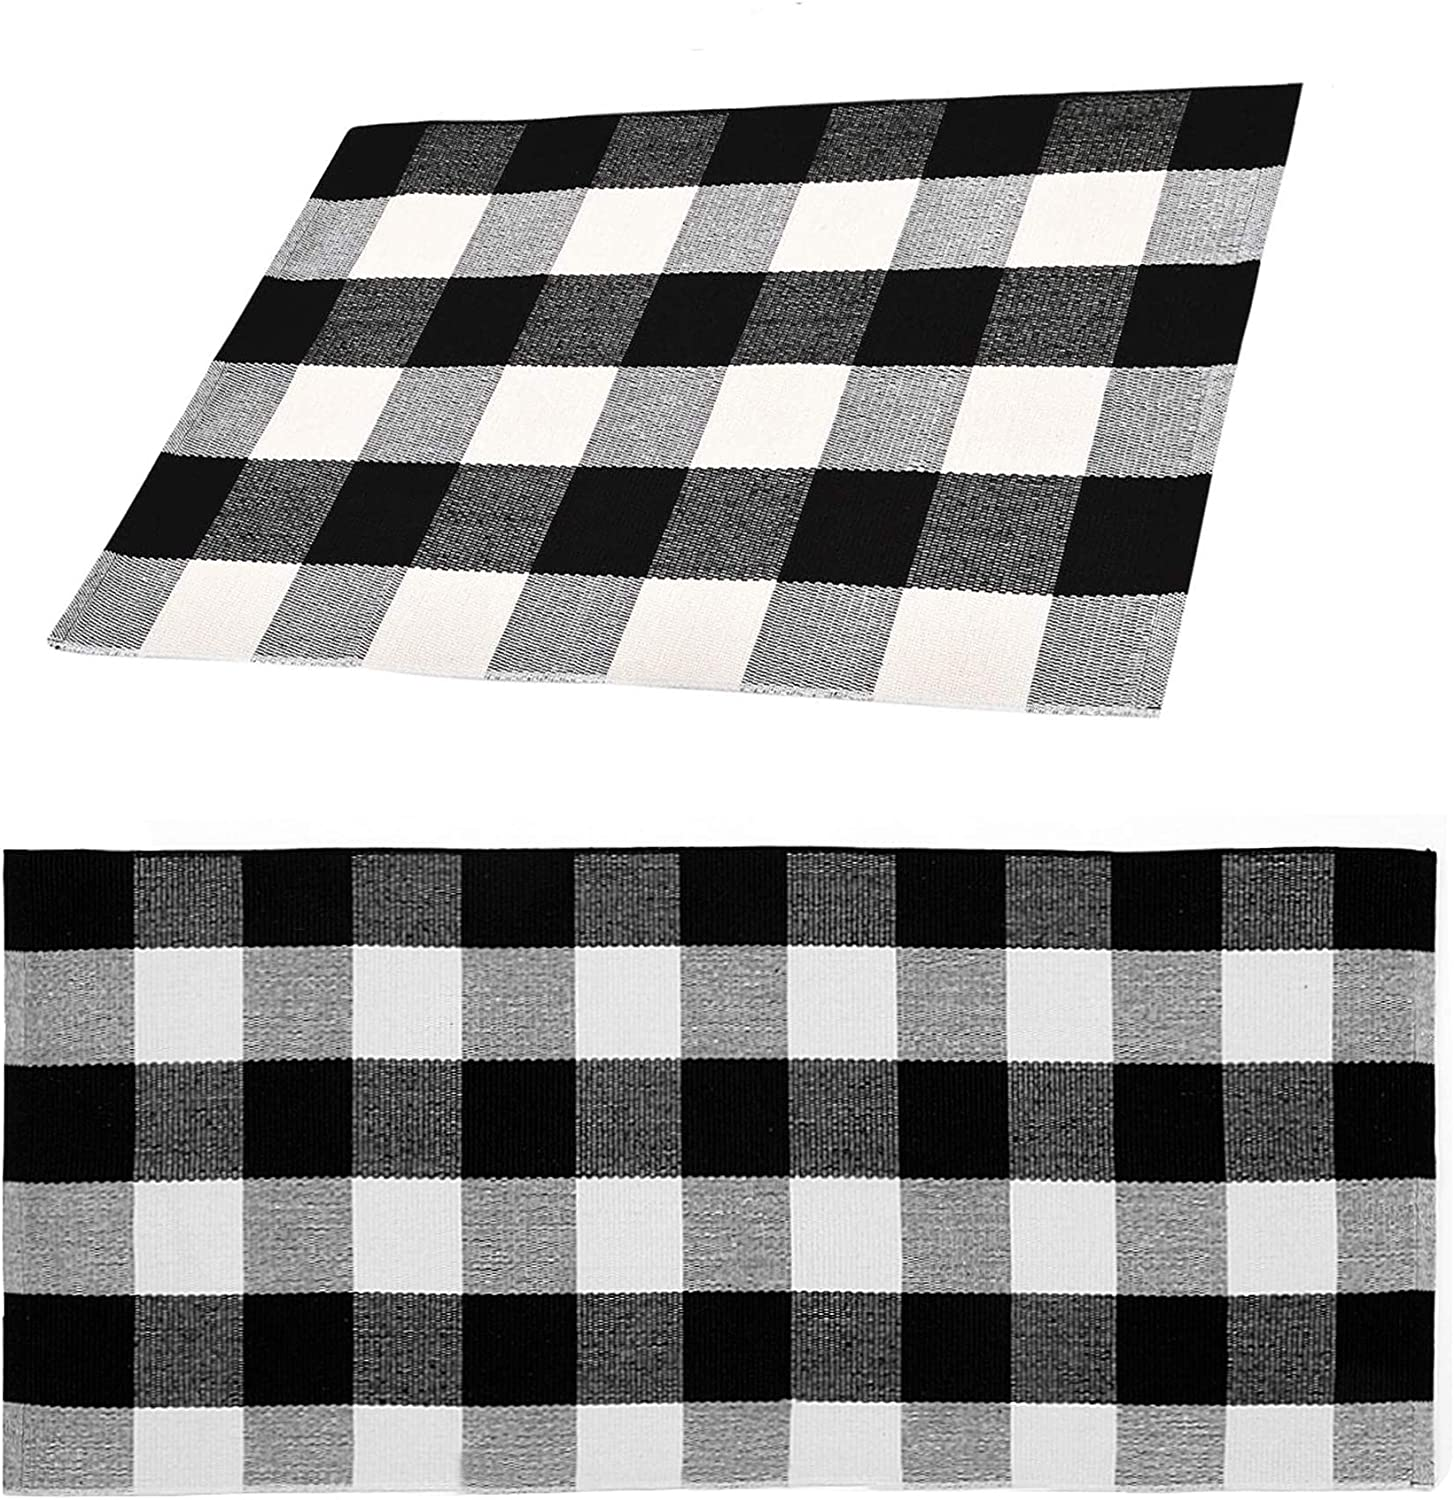 Winwinplus Buffalo Plaid Rug, Cotton Washable Woven Indoor Outdoor Rugs for Layered Door Mats Porch/Kitchen/Farmhouse Rug, Set of 2, 2'x3' + 2'x4.2' Black and White